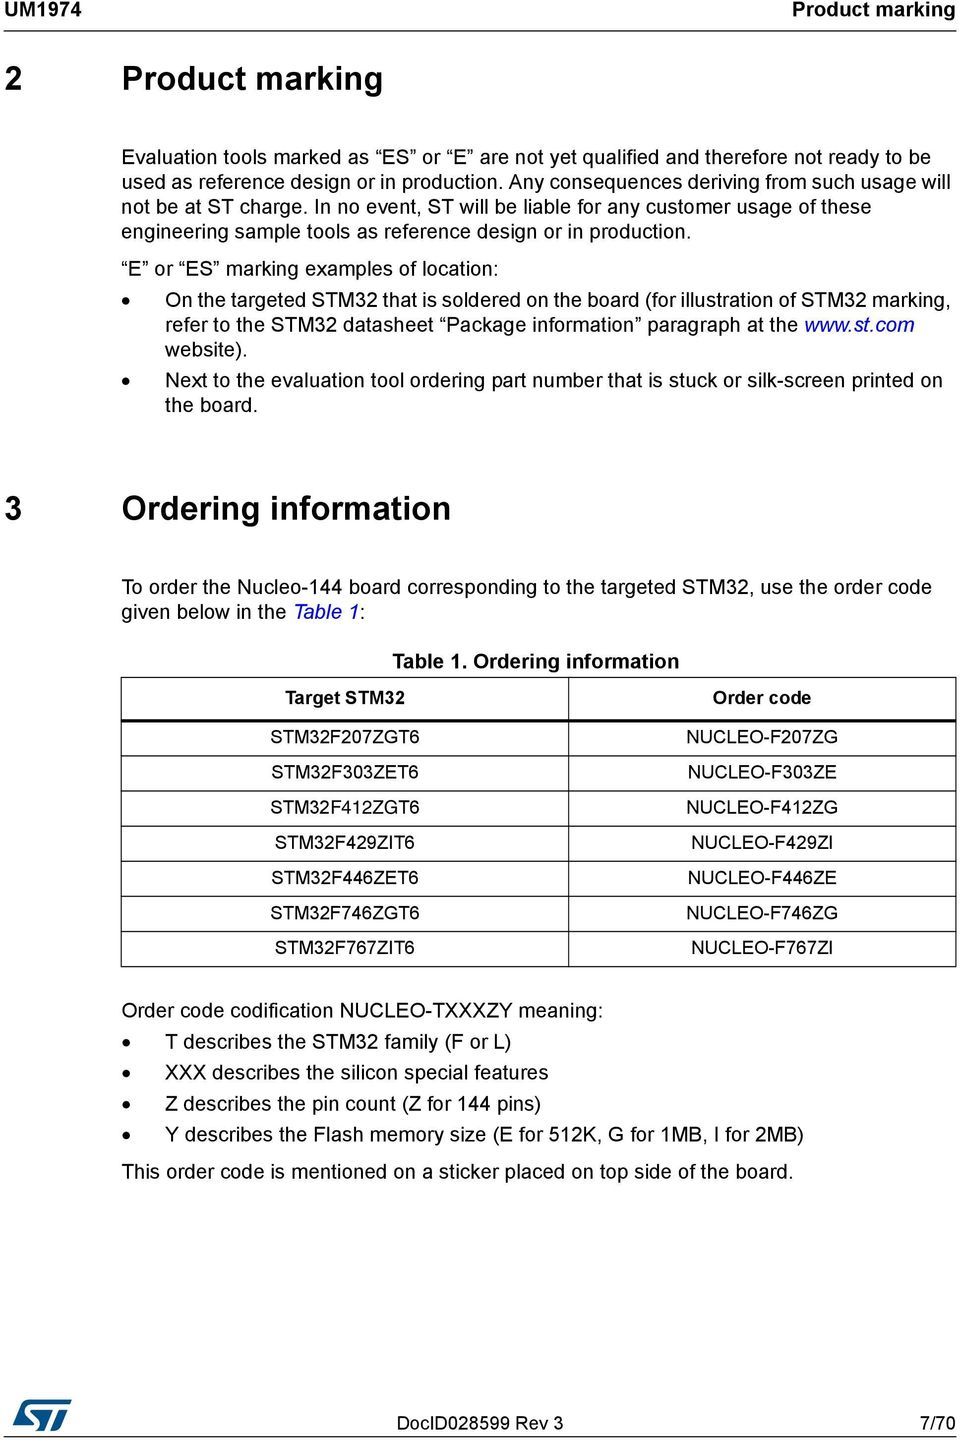 UM1974 User manual  STM32 Nucleo-144 board  Introduction - PDF